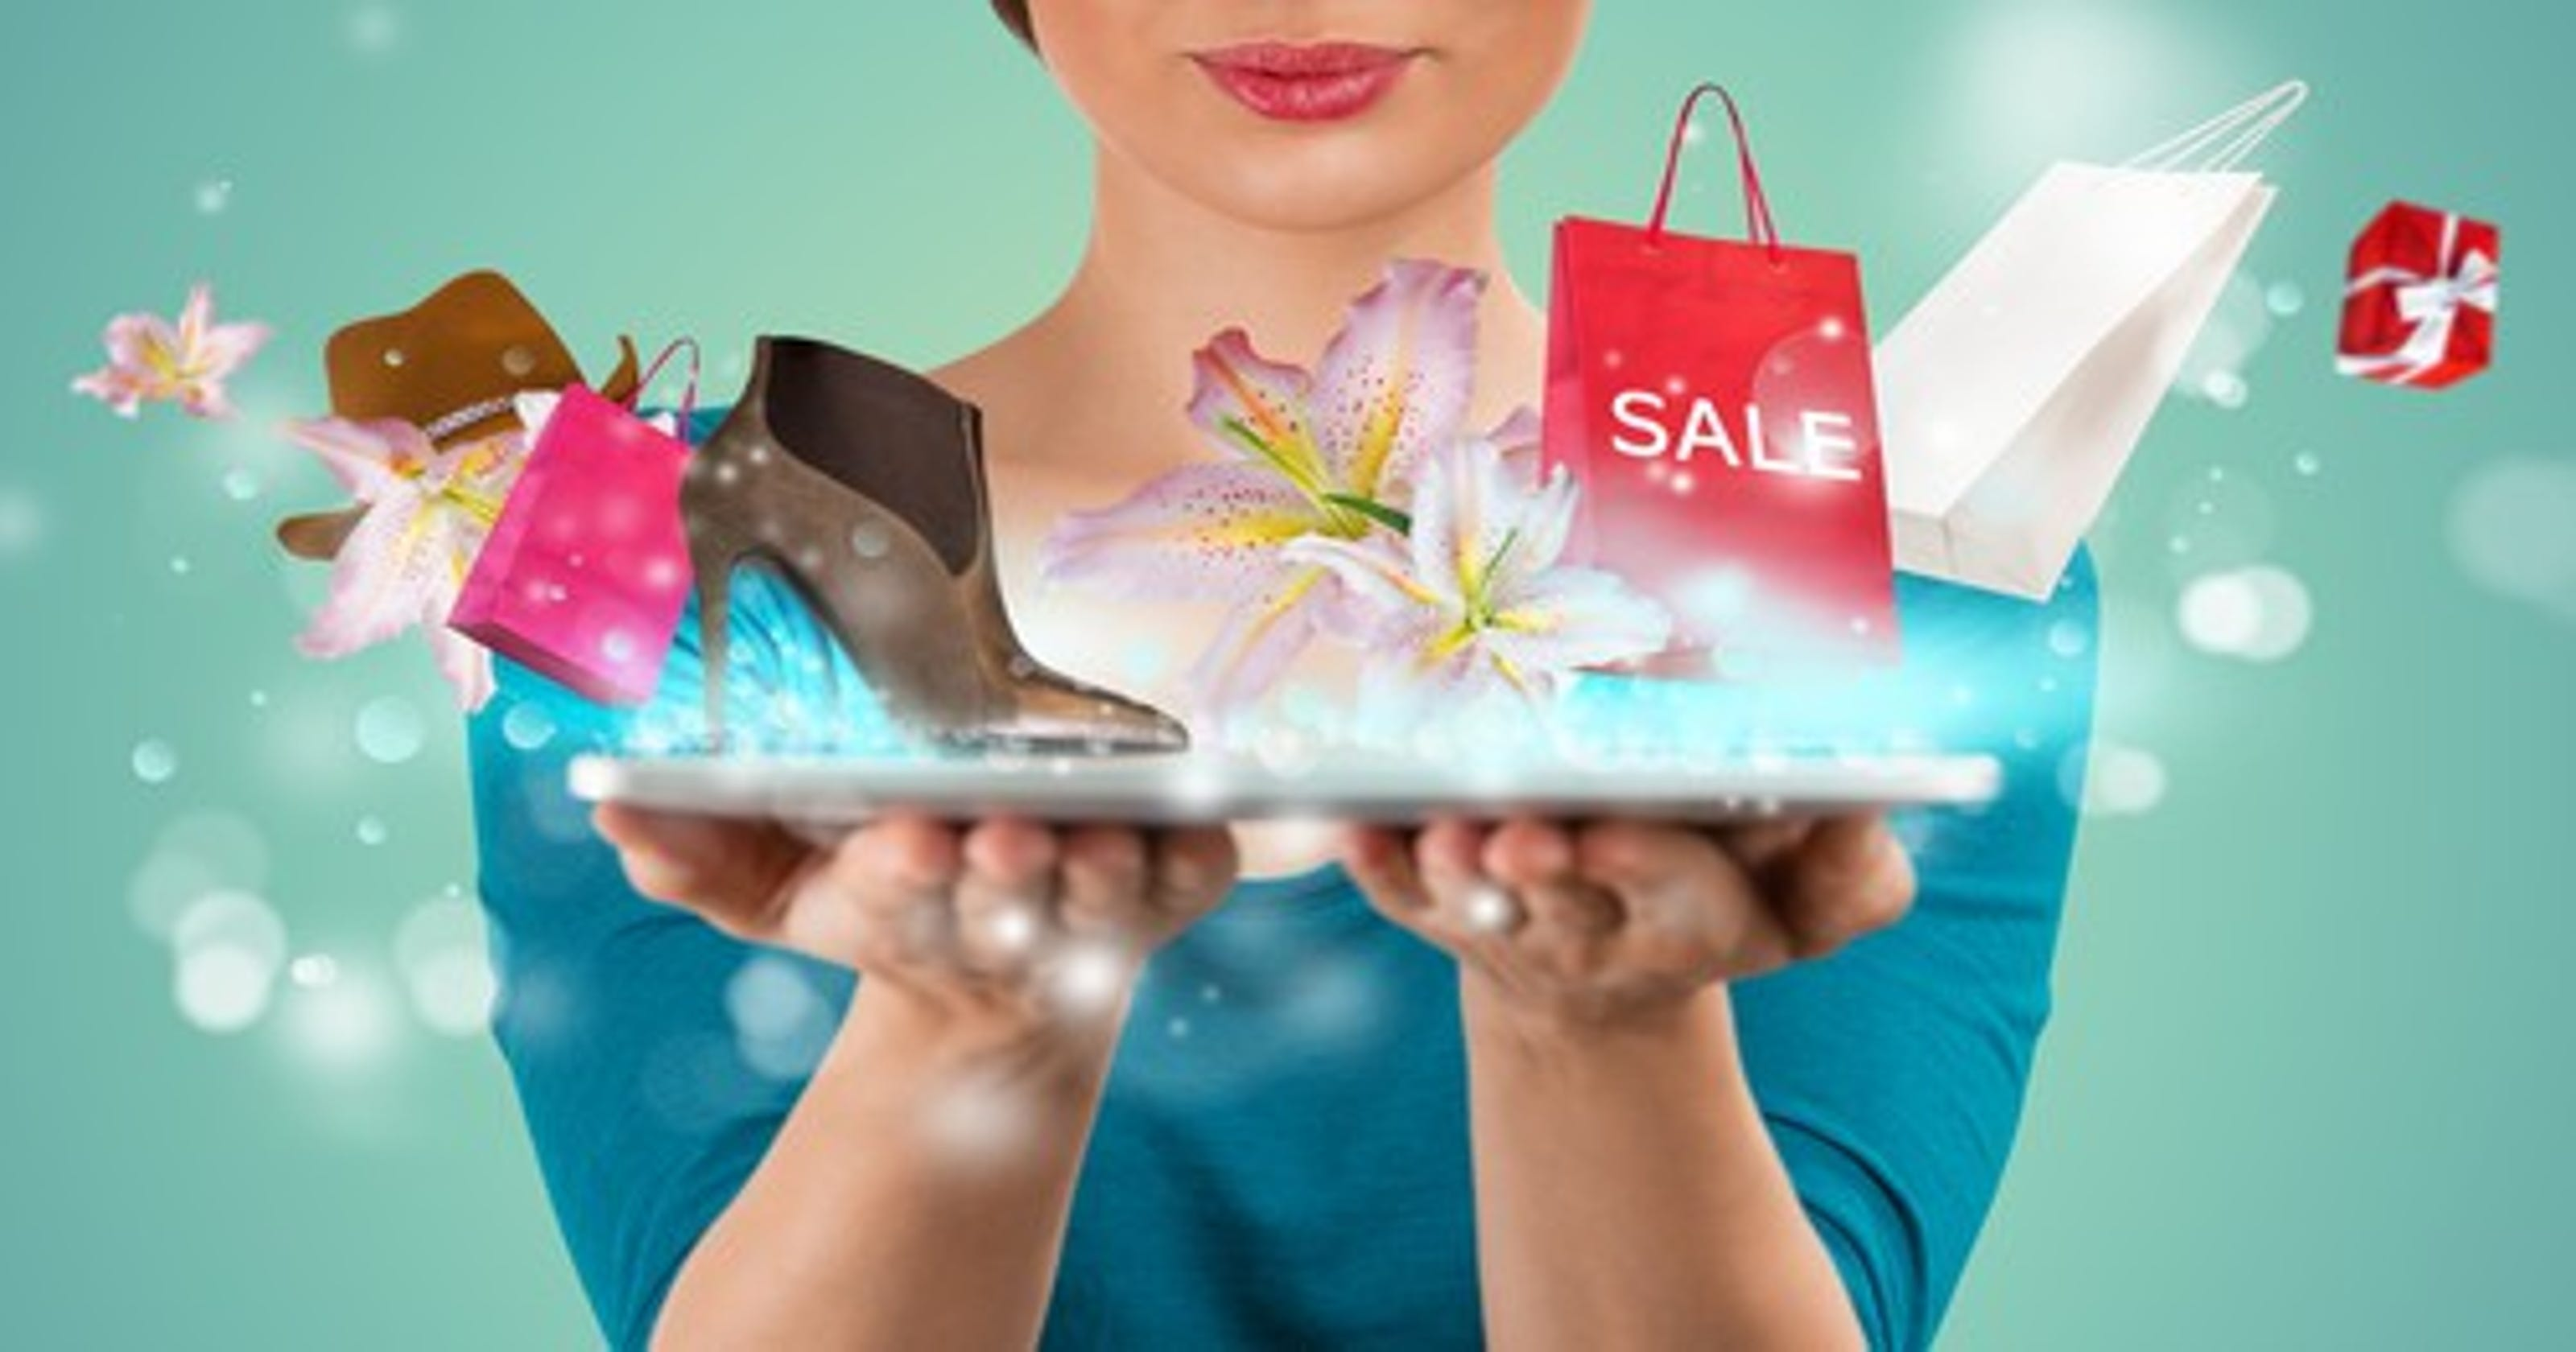 sign up offers from online retailers can be a tool for savvy shopping